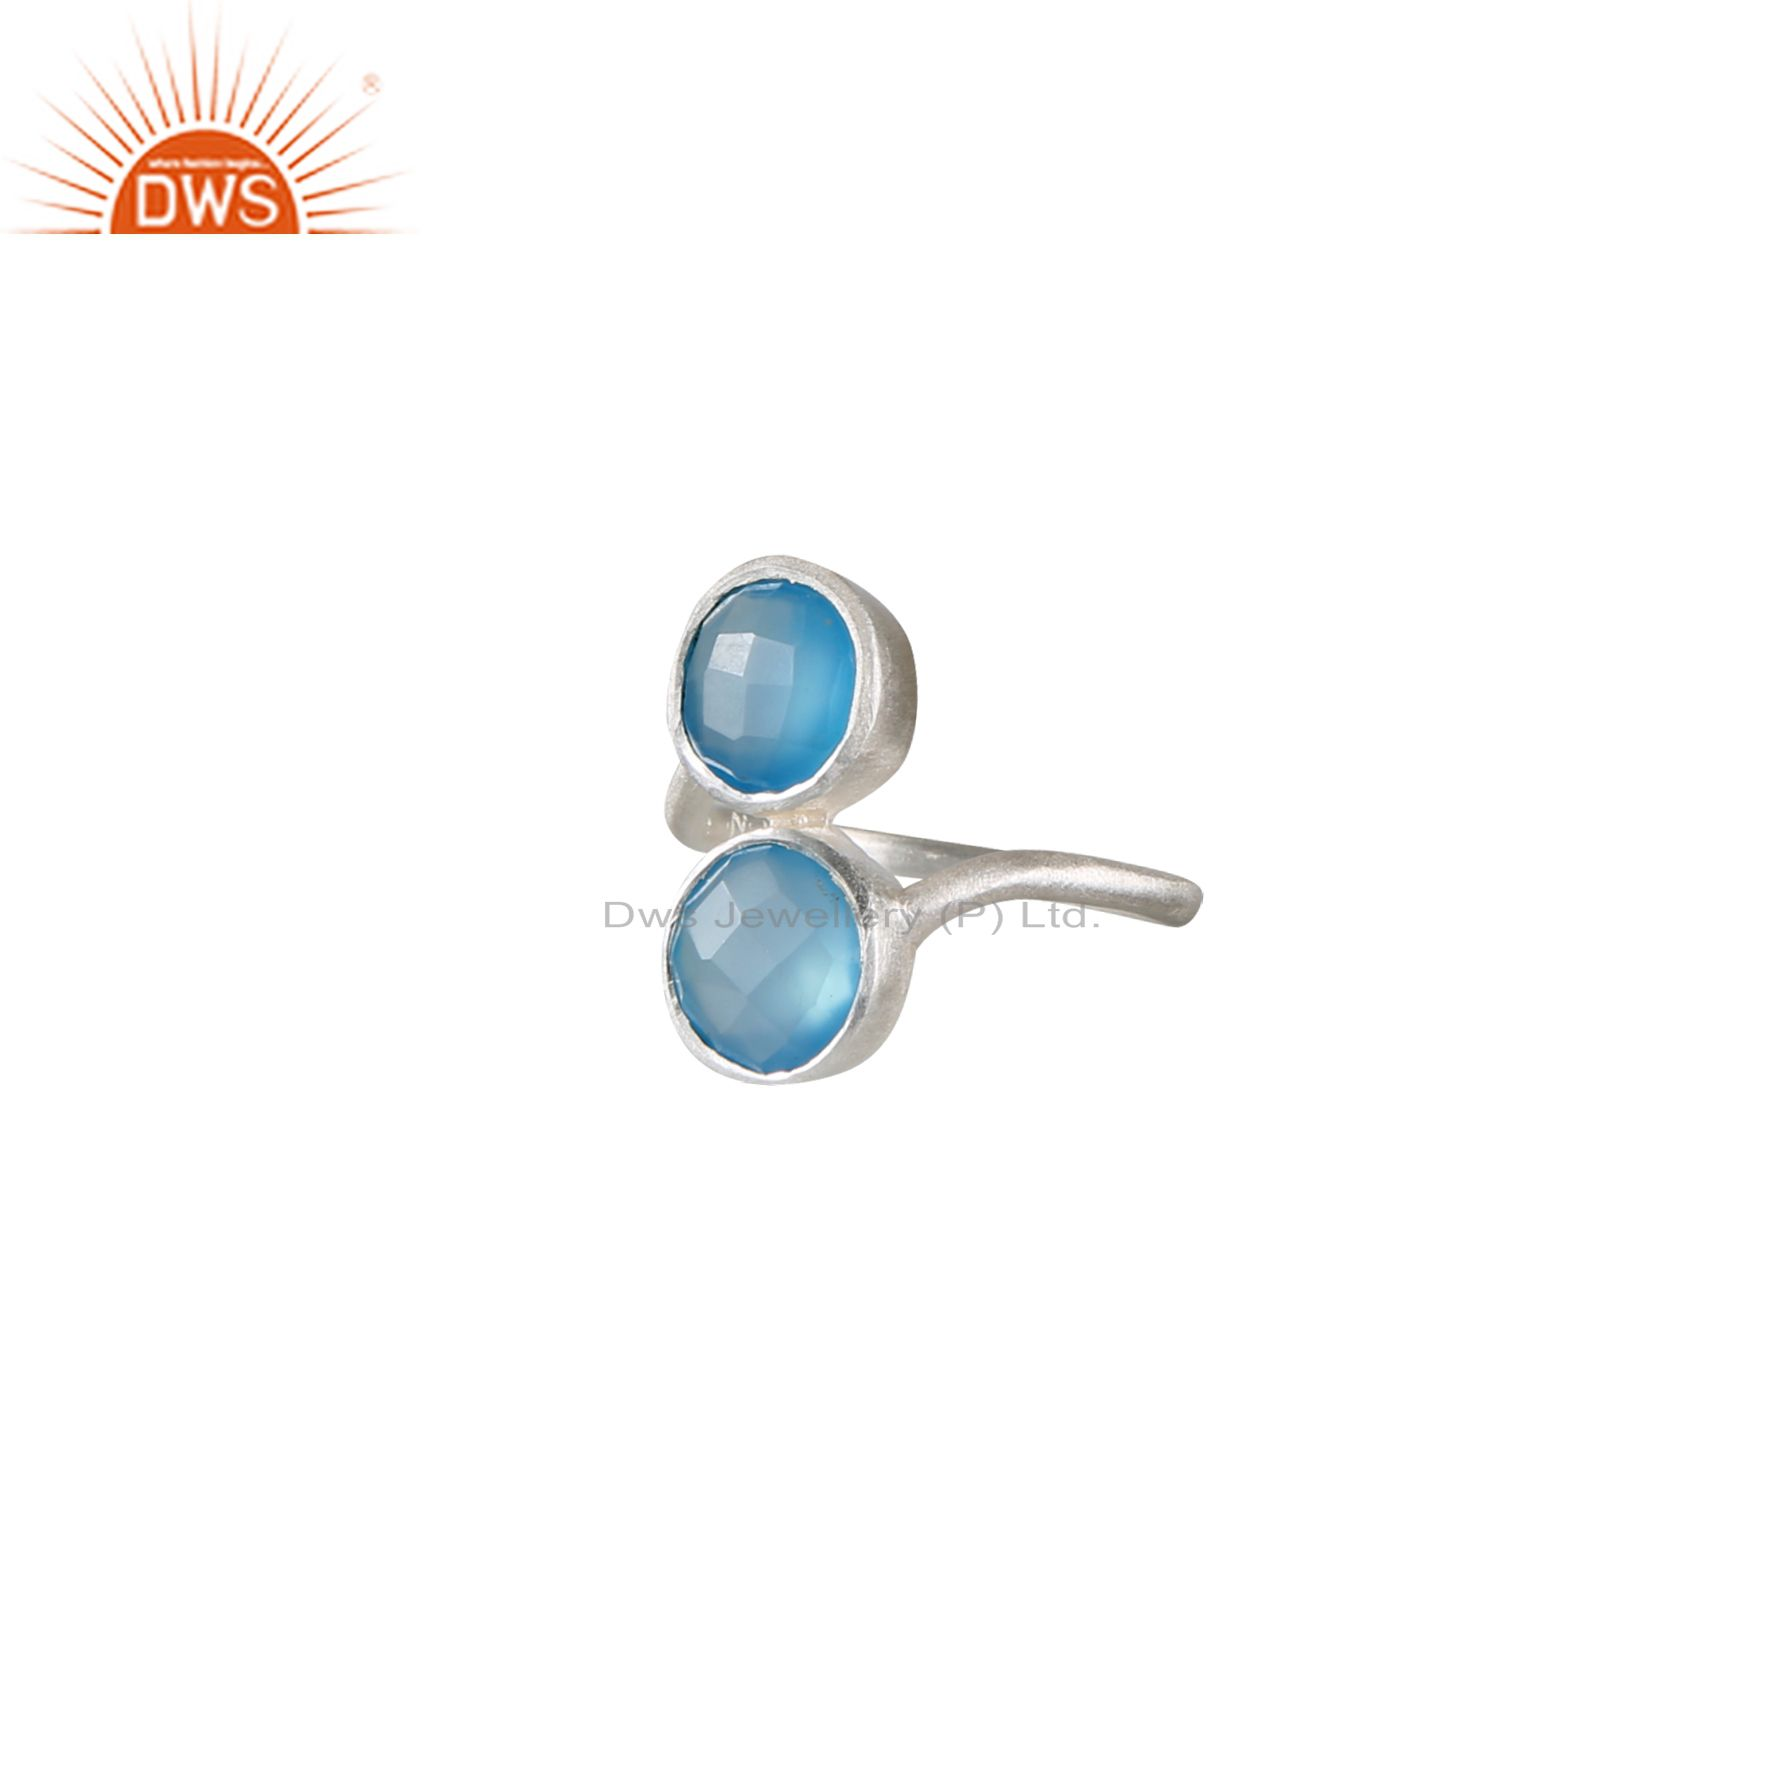 Handmade Sterling Silver Aqua Chalcedony Gemstone Stackable Ring